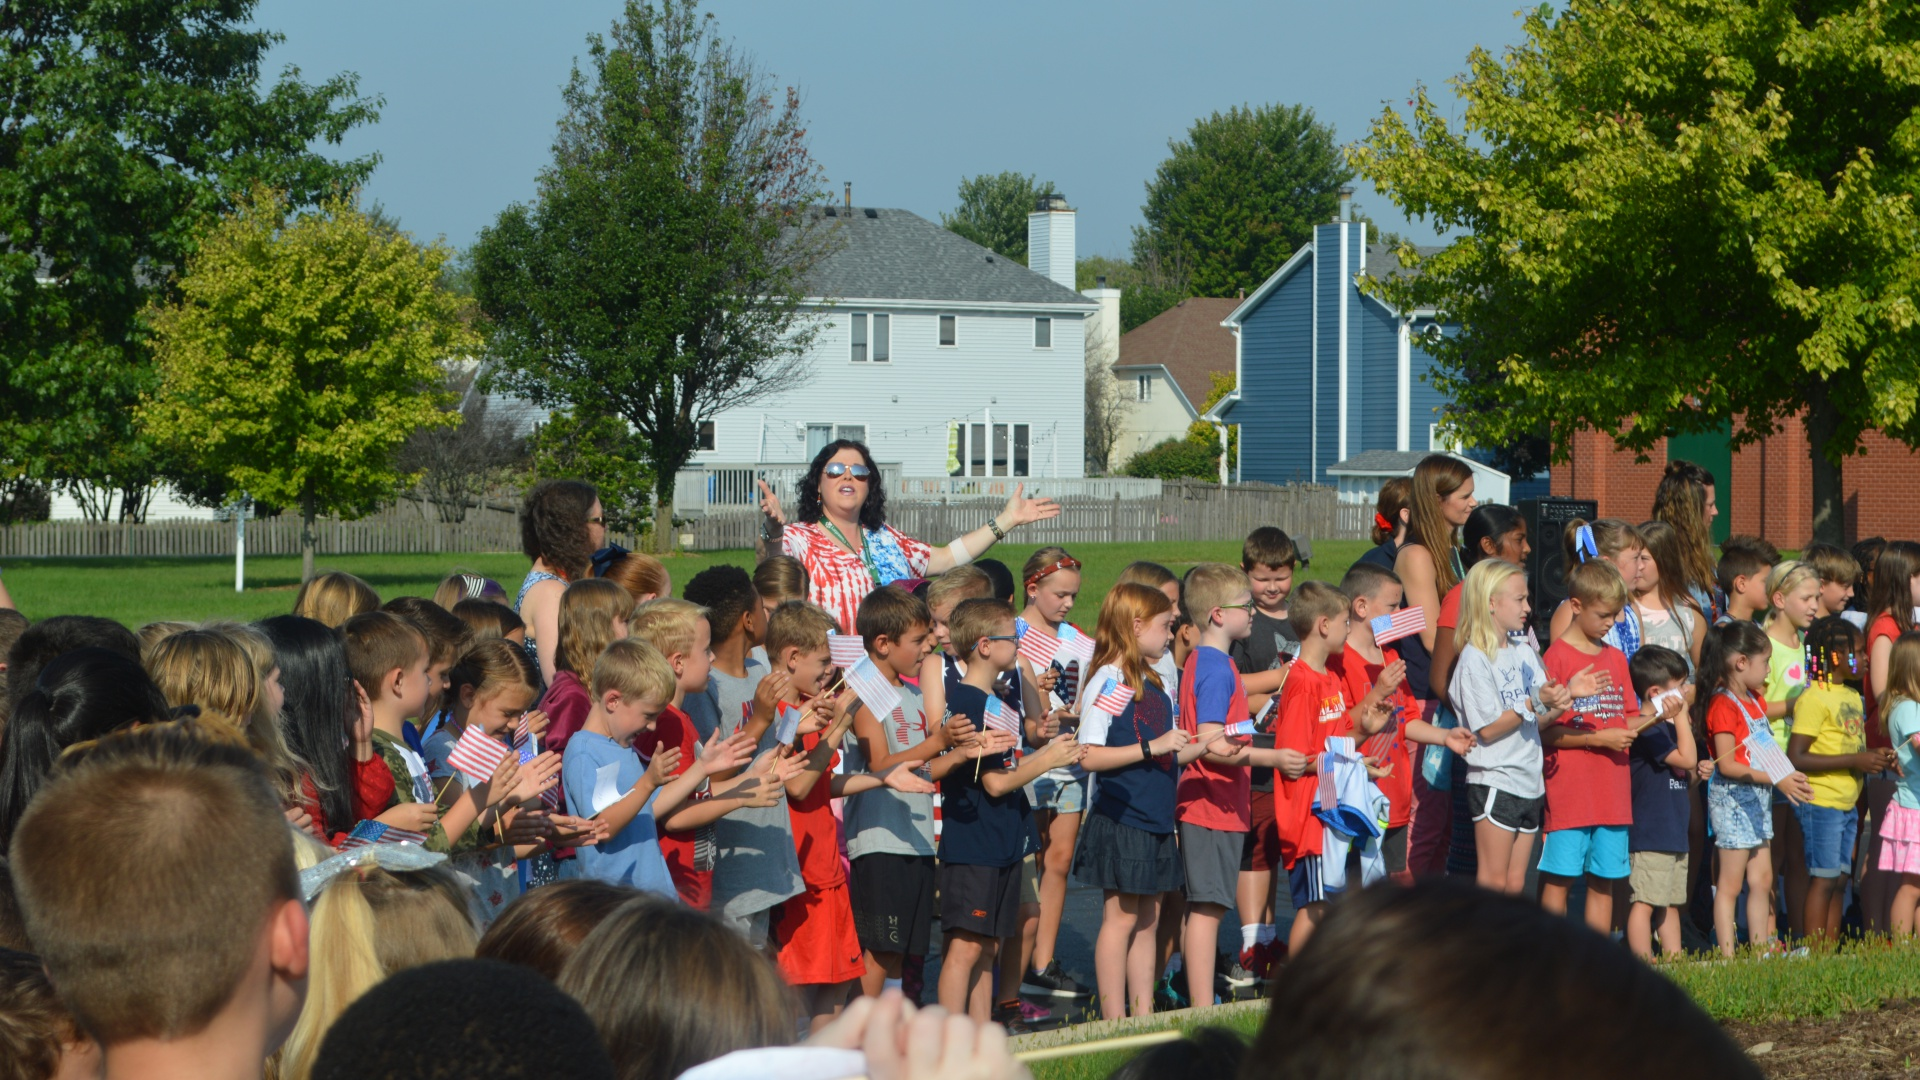 Mrs. Goolsby leading the students in song for Patriot's Day